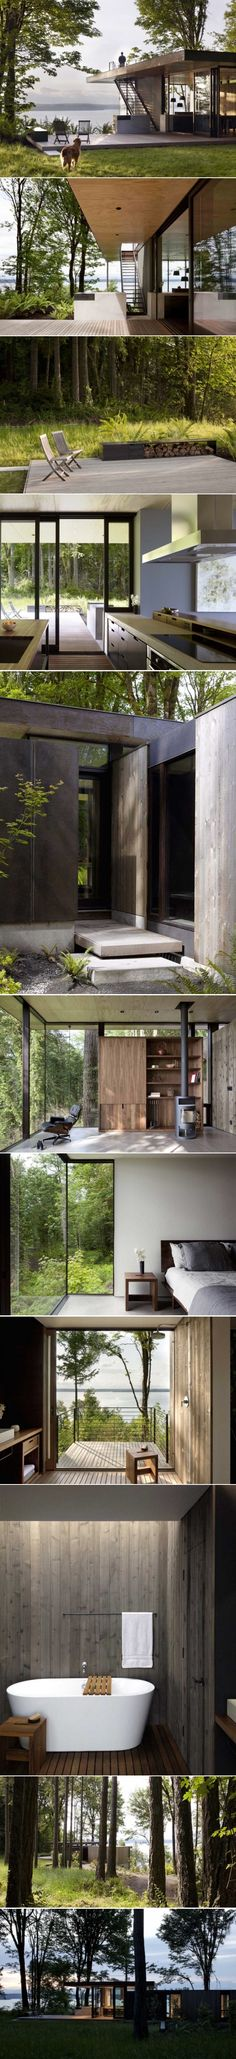 Architect Visit: A Puget Sound Cabin That Rests Lightly on the Land: Gardenista